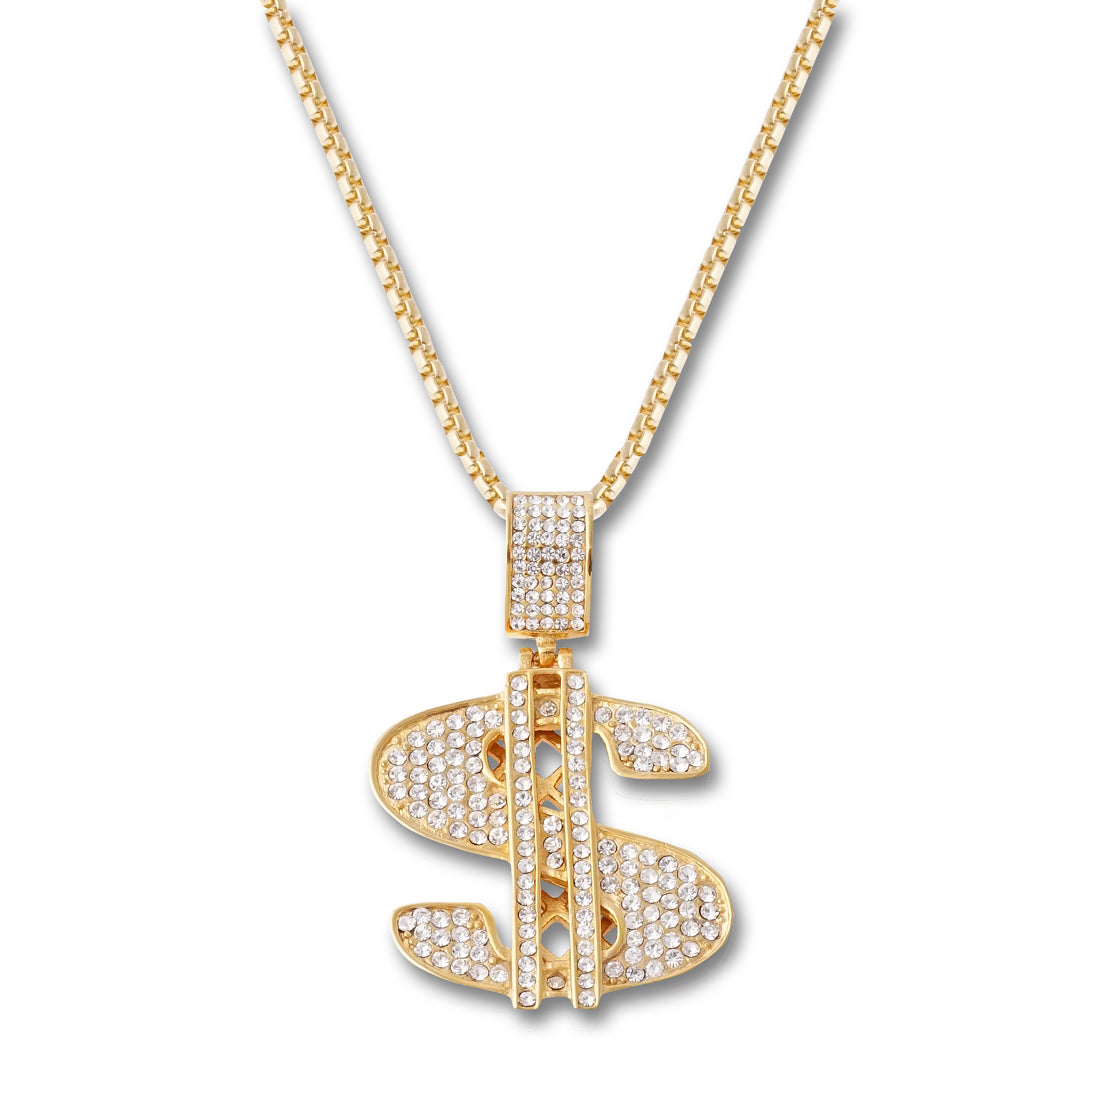 GOLD Dollar Sign Pendant Necklace - URBANCREWS